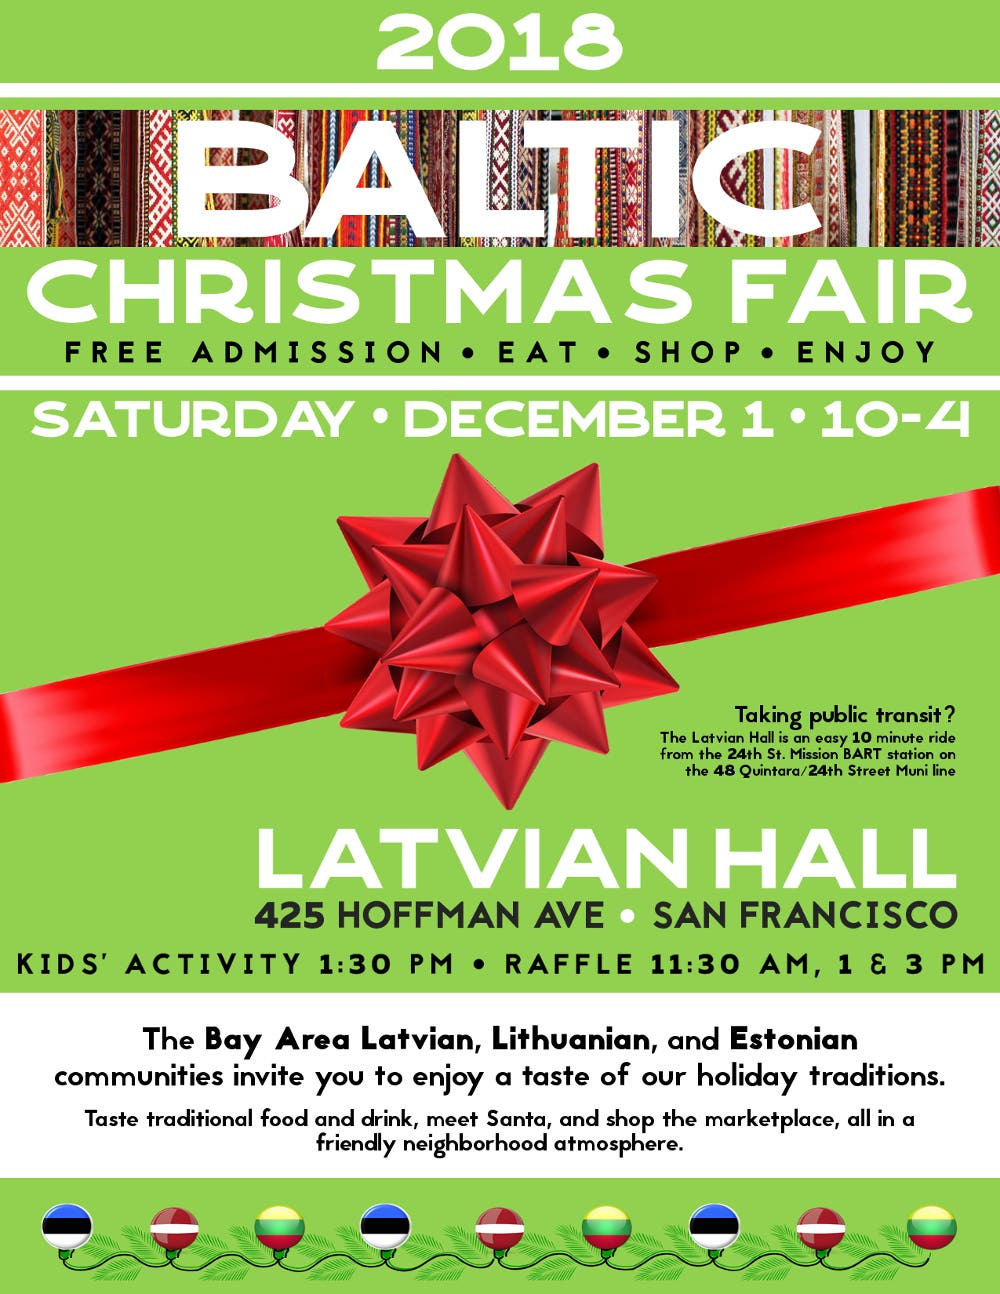 Latvian Lutheran Church Christmas Fair 2020 Dec 1 | 5th Annual Baltic Christmas Fair | San Francisco, CA Patch